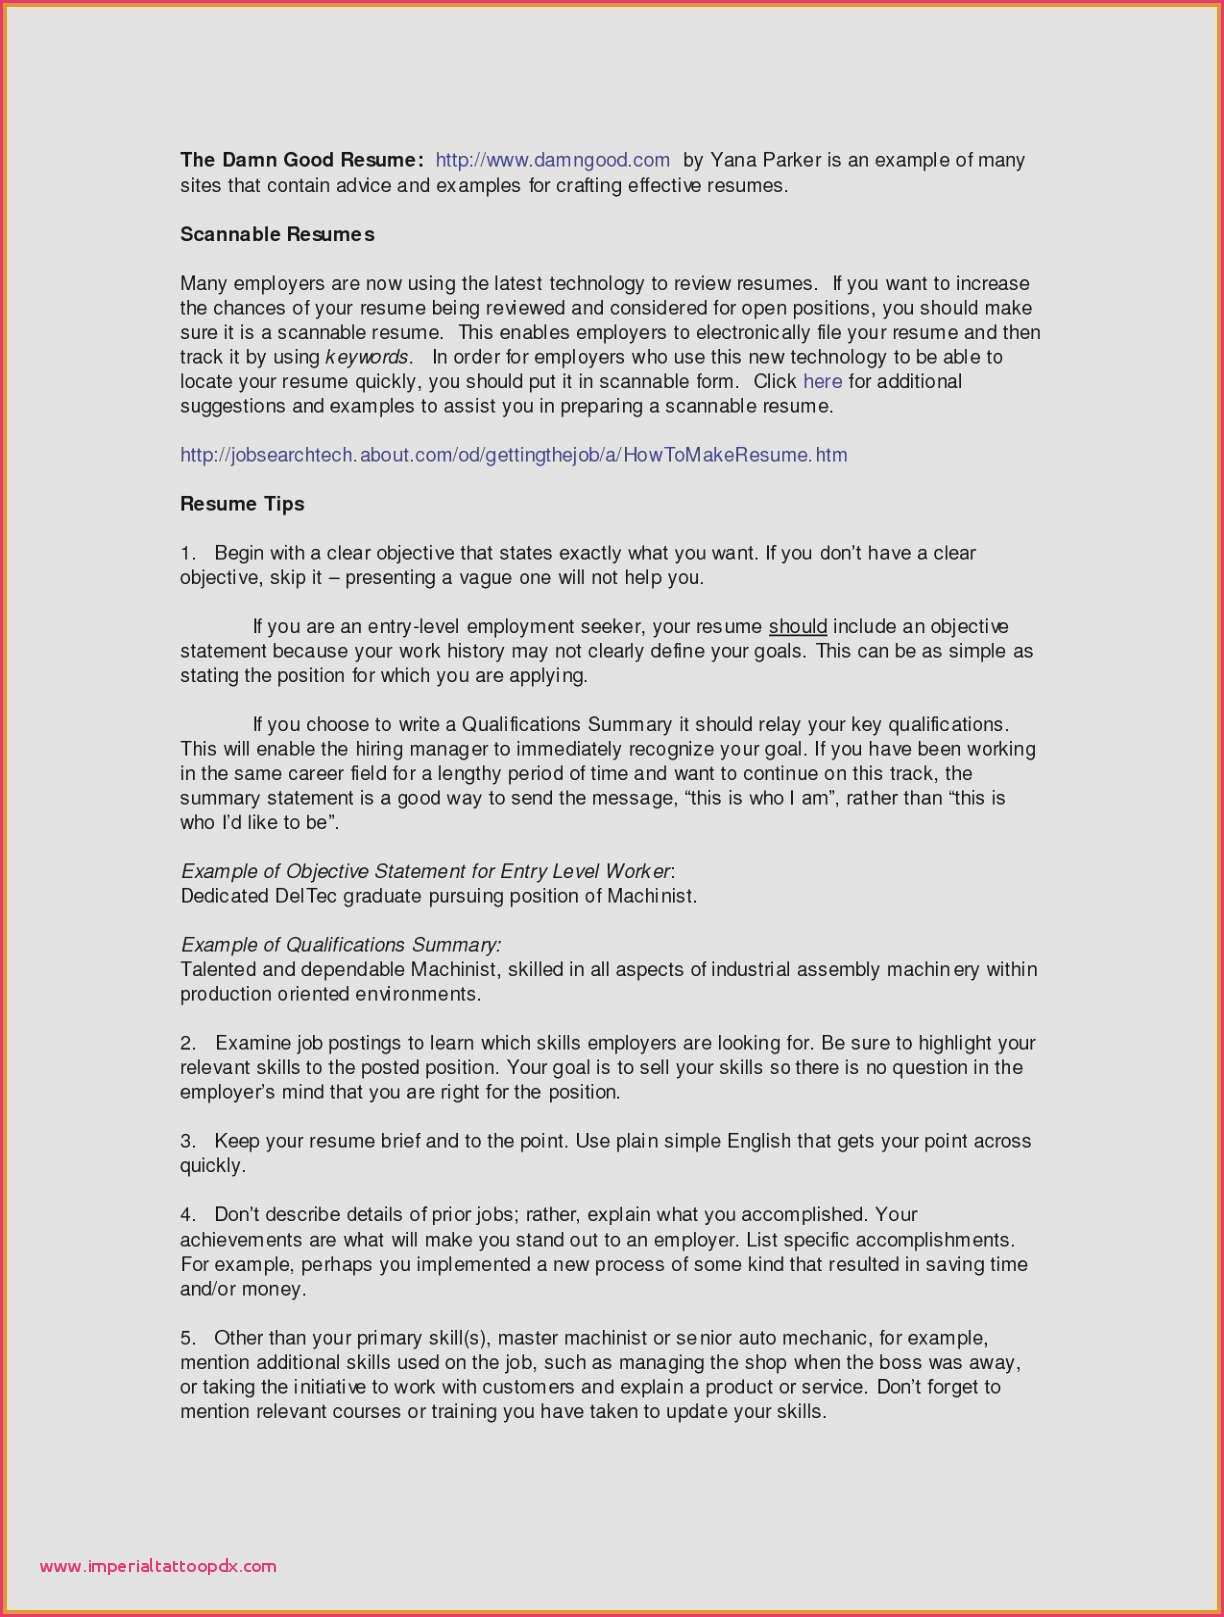 Resume Don Ts - Resume Qualifications Summary Customer Service Fresh Examples